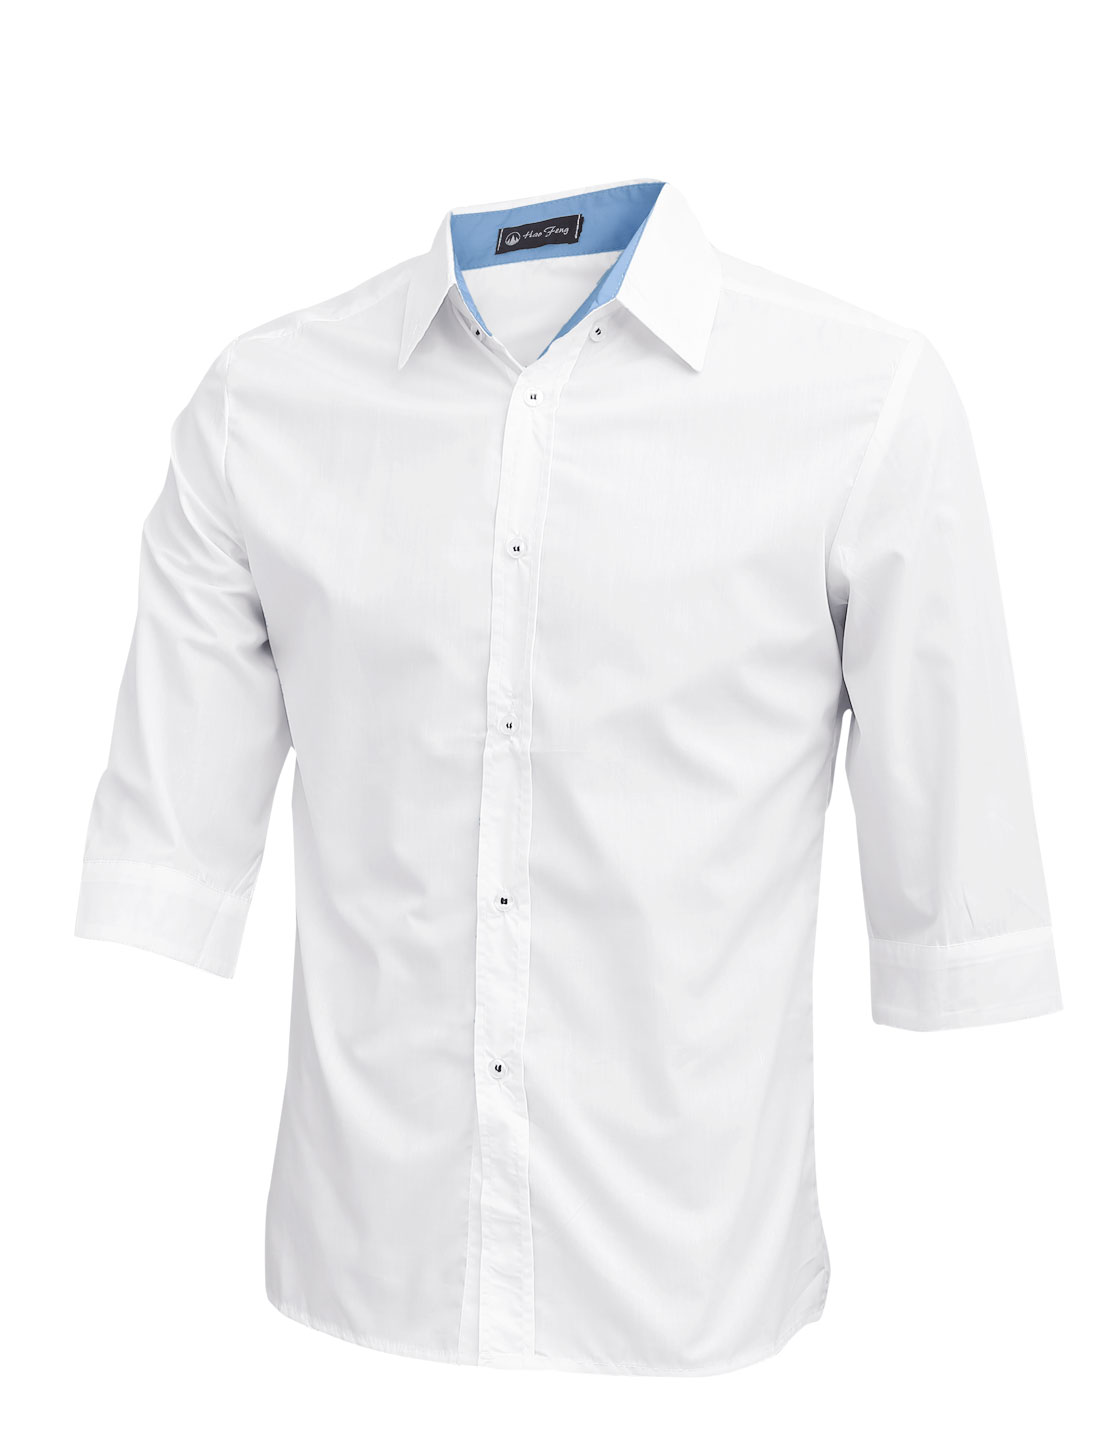 Men Stylish Button Up 3/4 Sleeve Casual Shirt White M